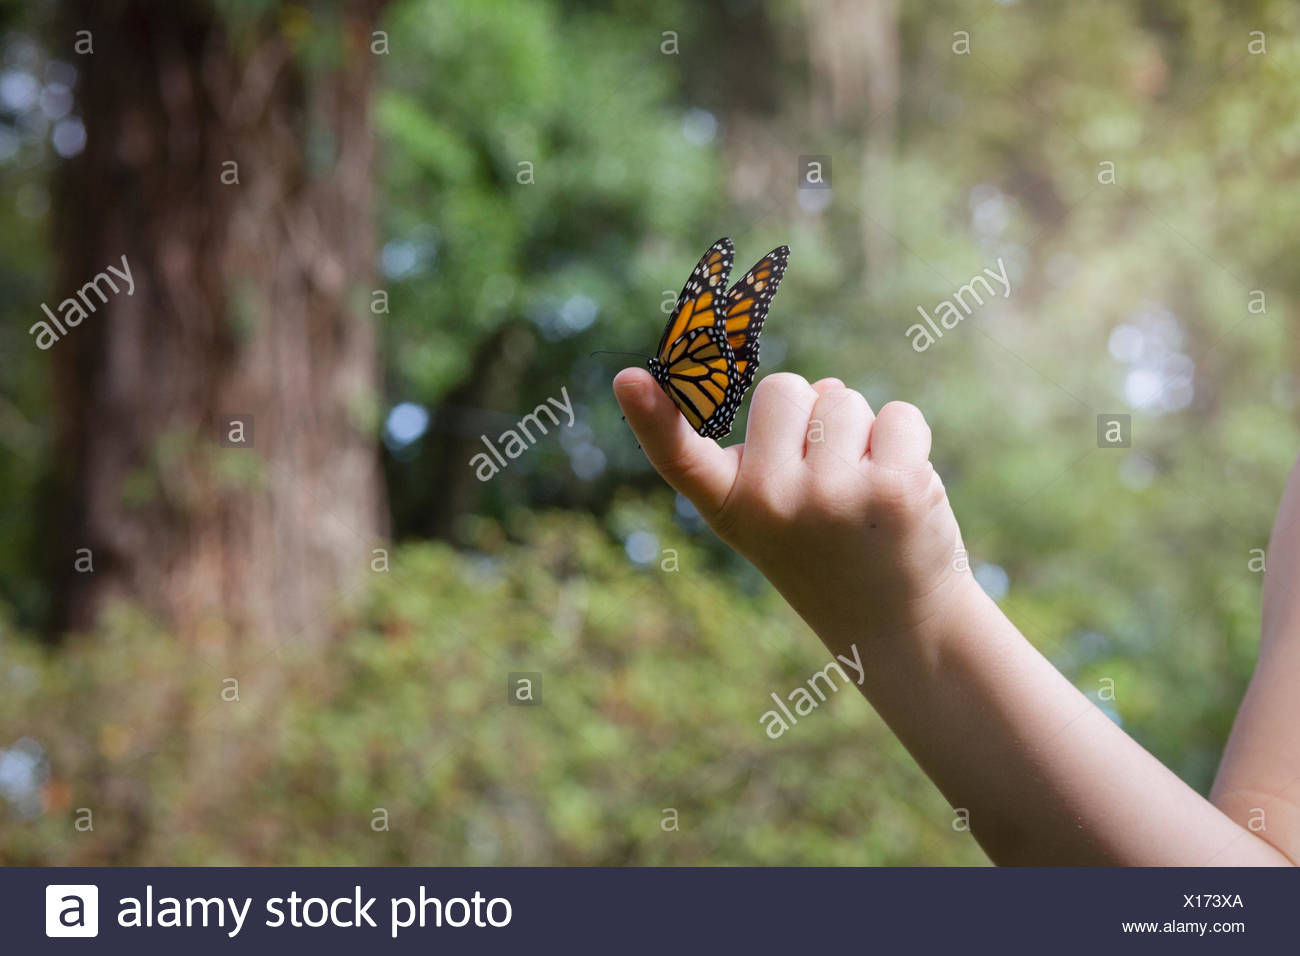 7e78a3fd2 Girls holding monarch butterfly on finger Stock Photo: 276137298 - Alamy